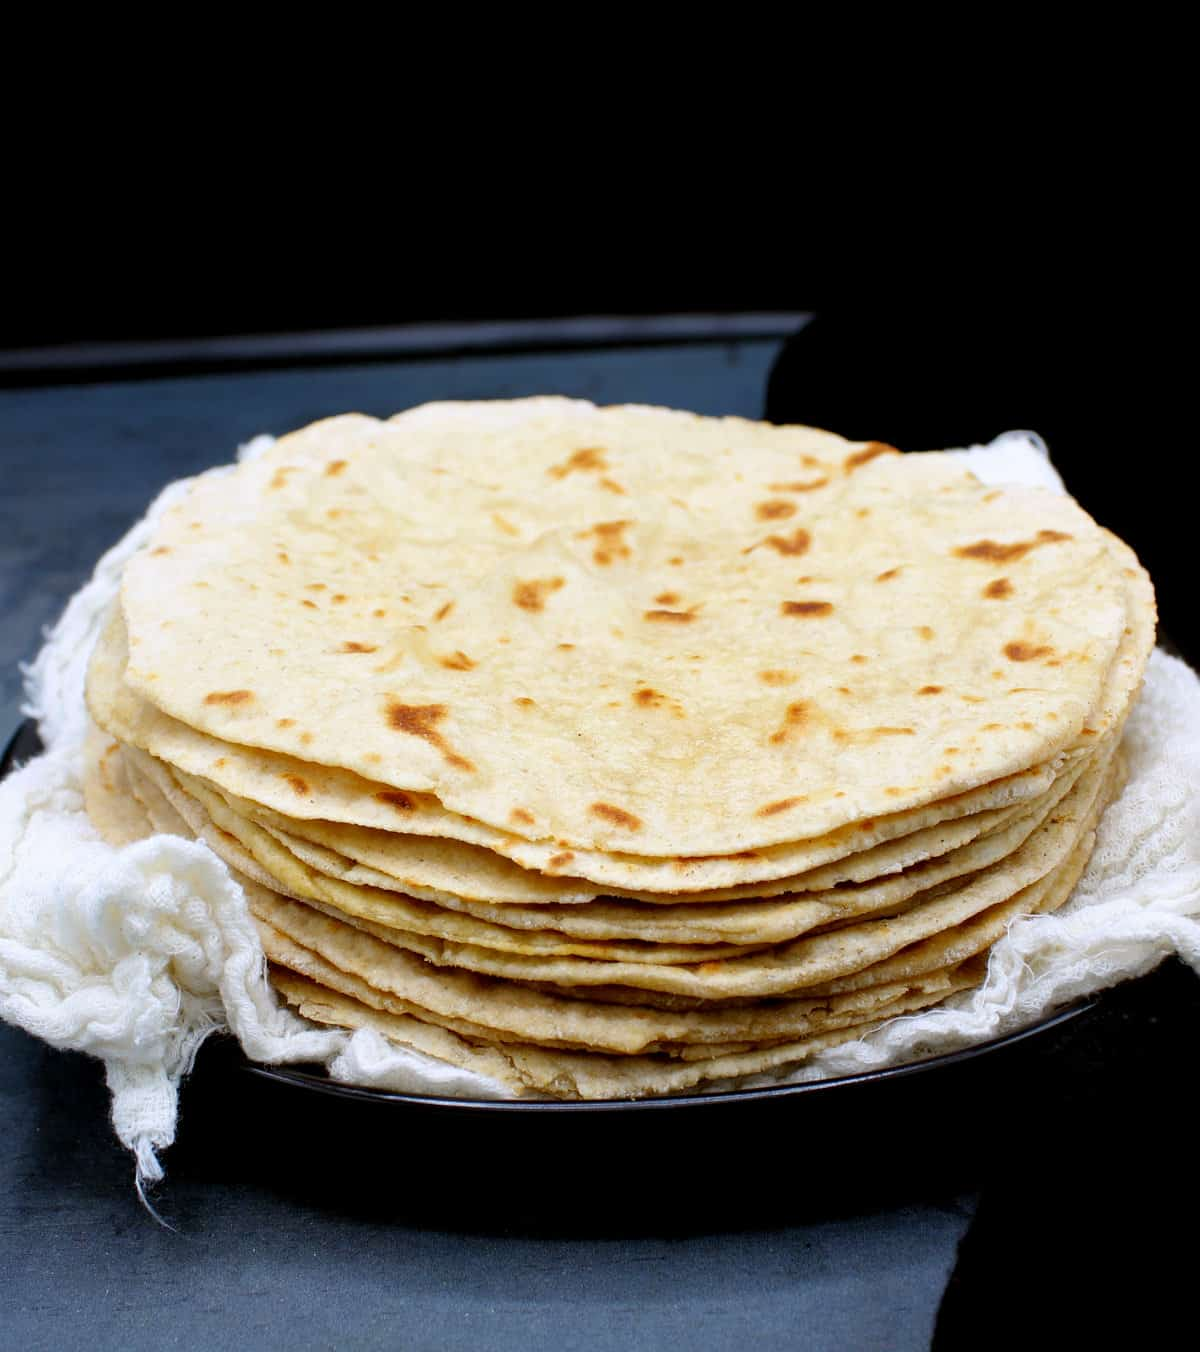 Photo of a stack of soft sourdough rotis wrapped in cheesecloth on a black plate.